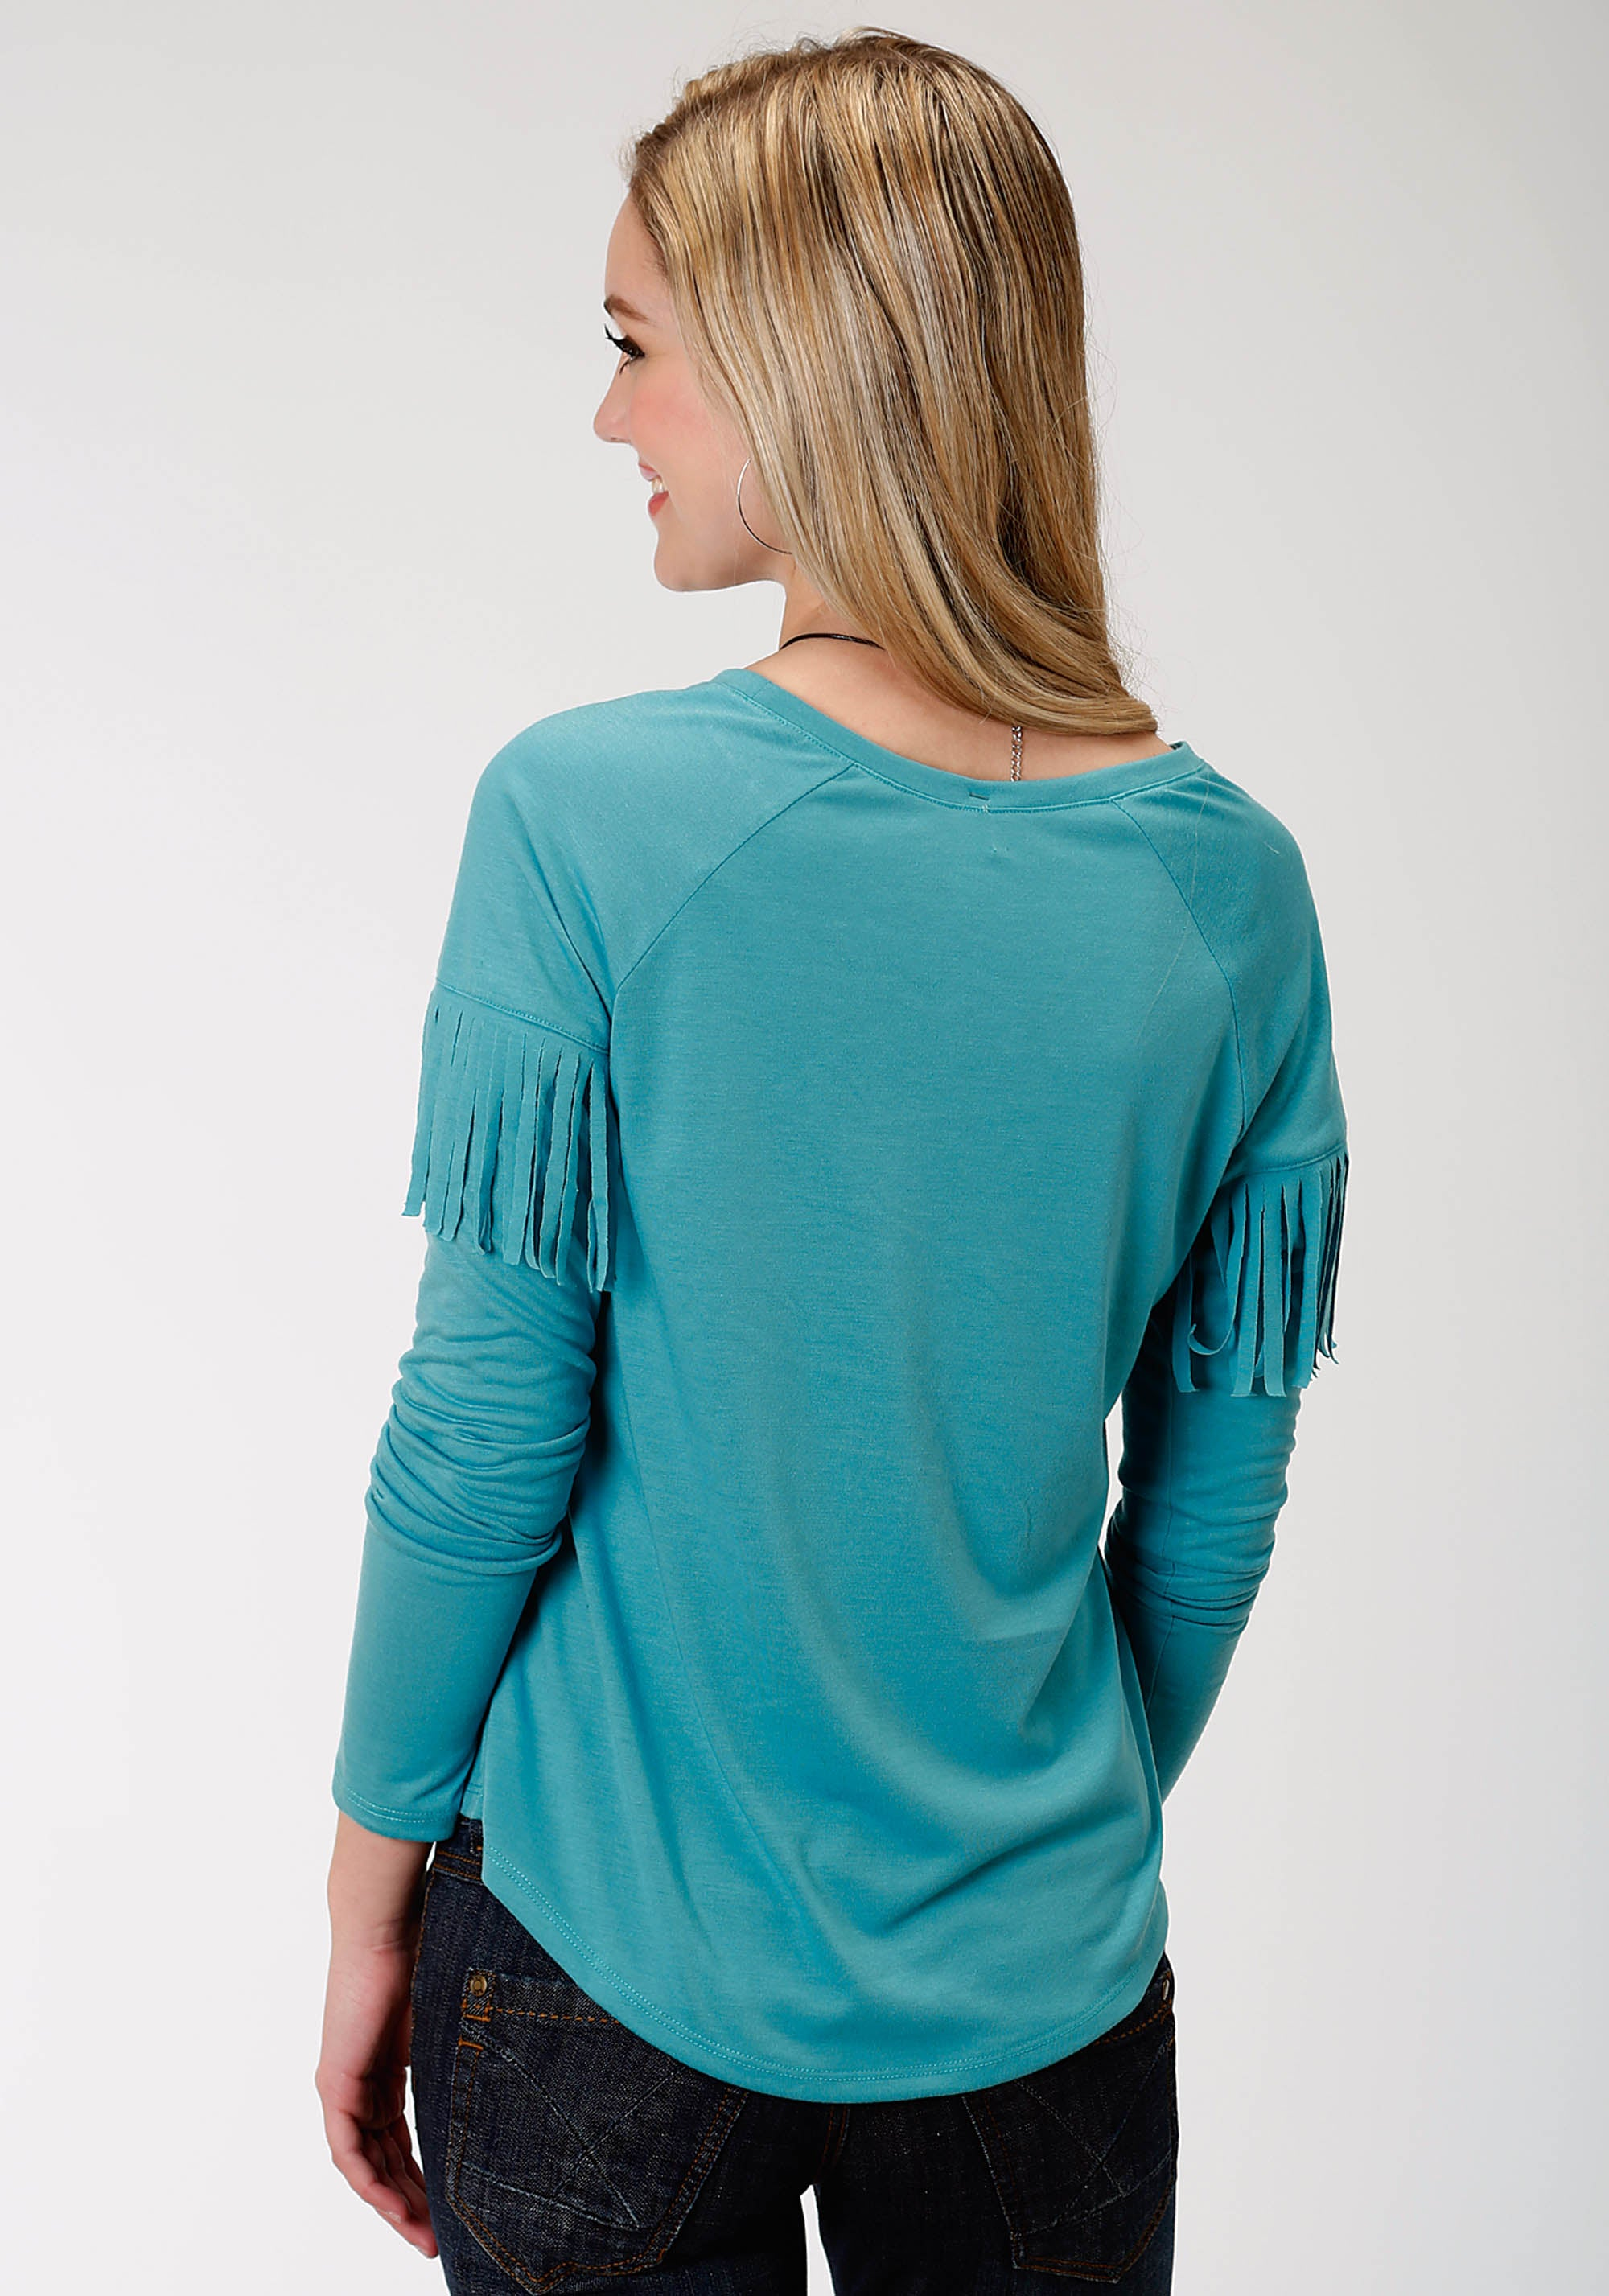 ROPER WOMENS BLUE 0490 P/R JERSEY LS CREW NECK TEE FIVE STAR COLLECTION- FALL III LONG SLEEVE